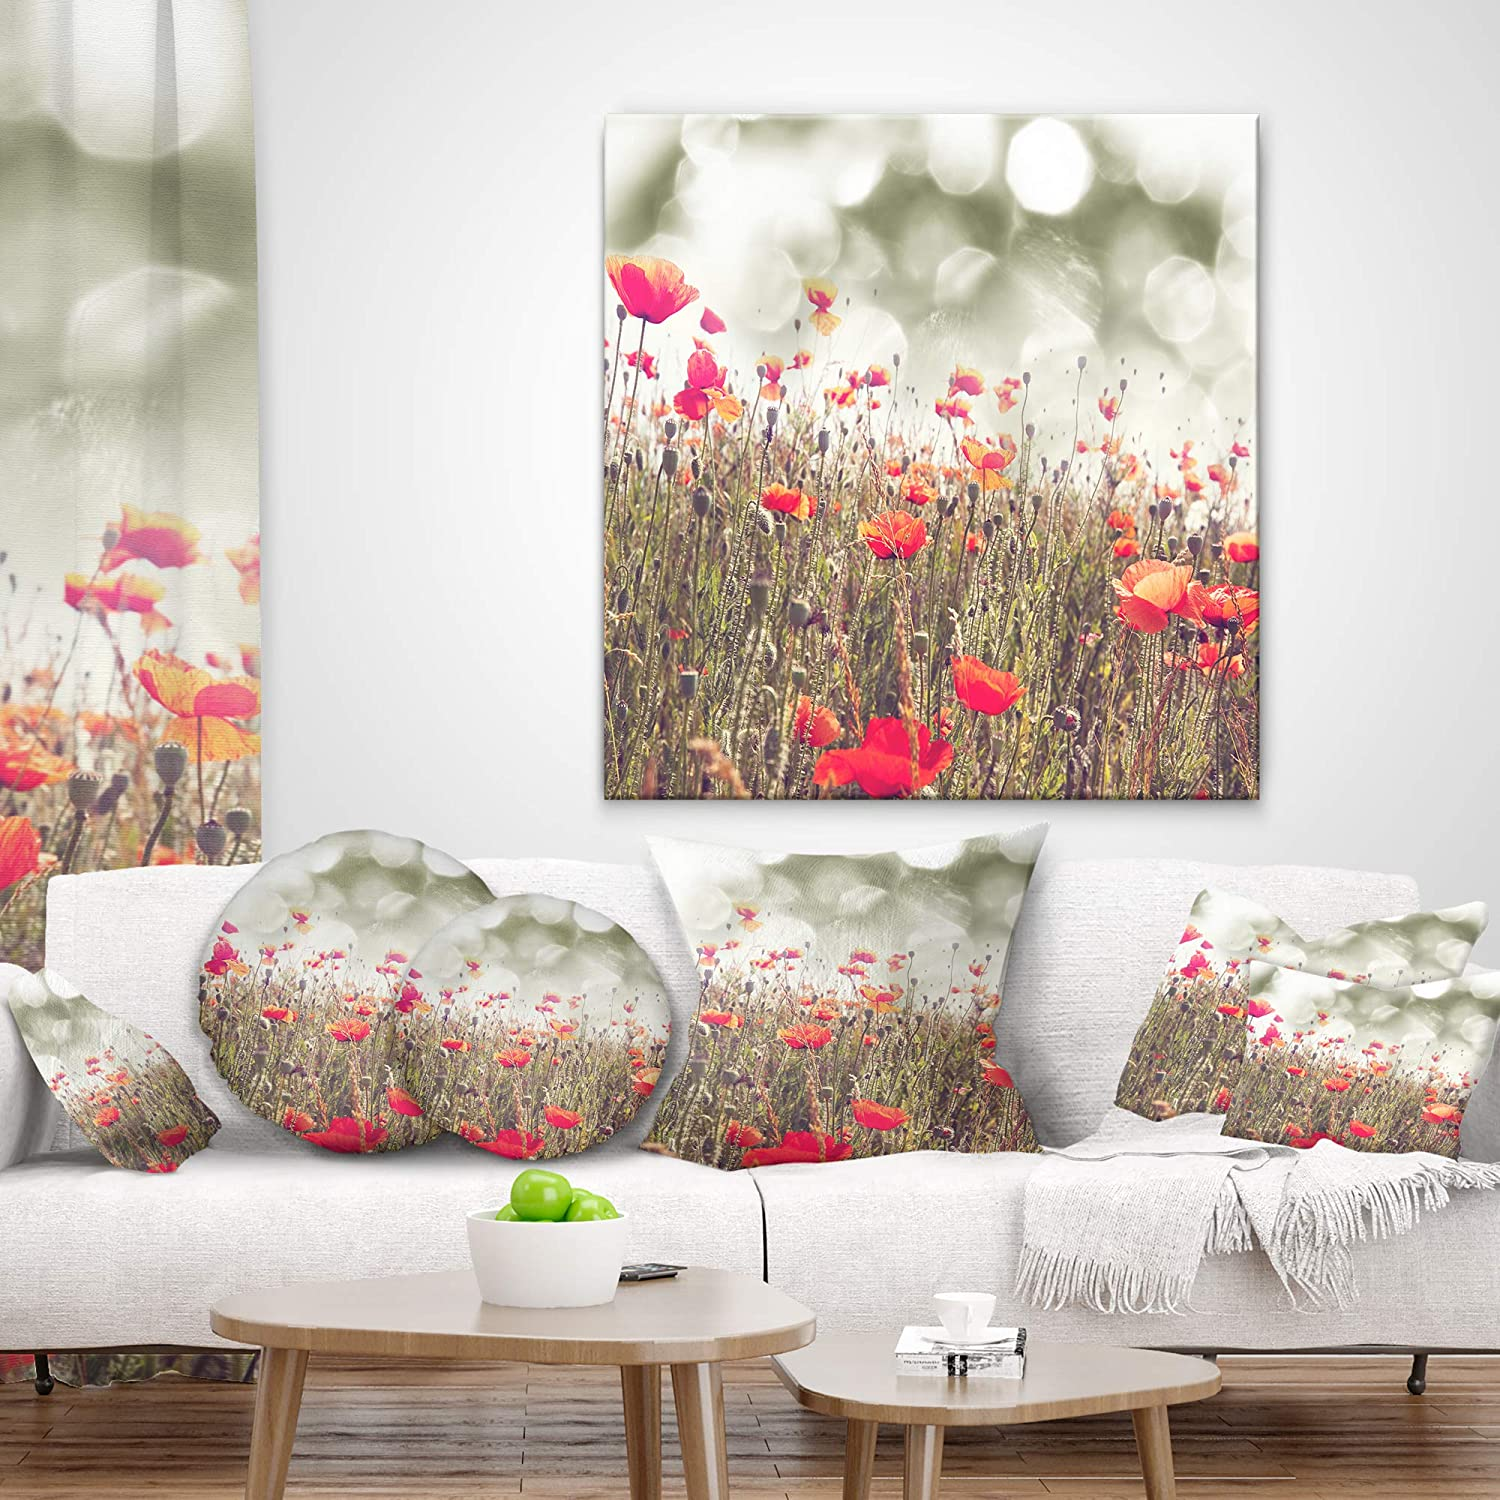 in x 20 in Designart CU12704-12-20 Red Poppy Flowers Meadow Floral Lumbar Cushion Cover for Living Room Sofa Throw Pillow 12 in Insert Printed On Both Side